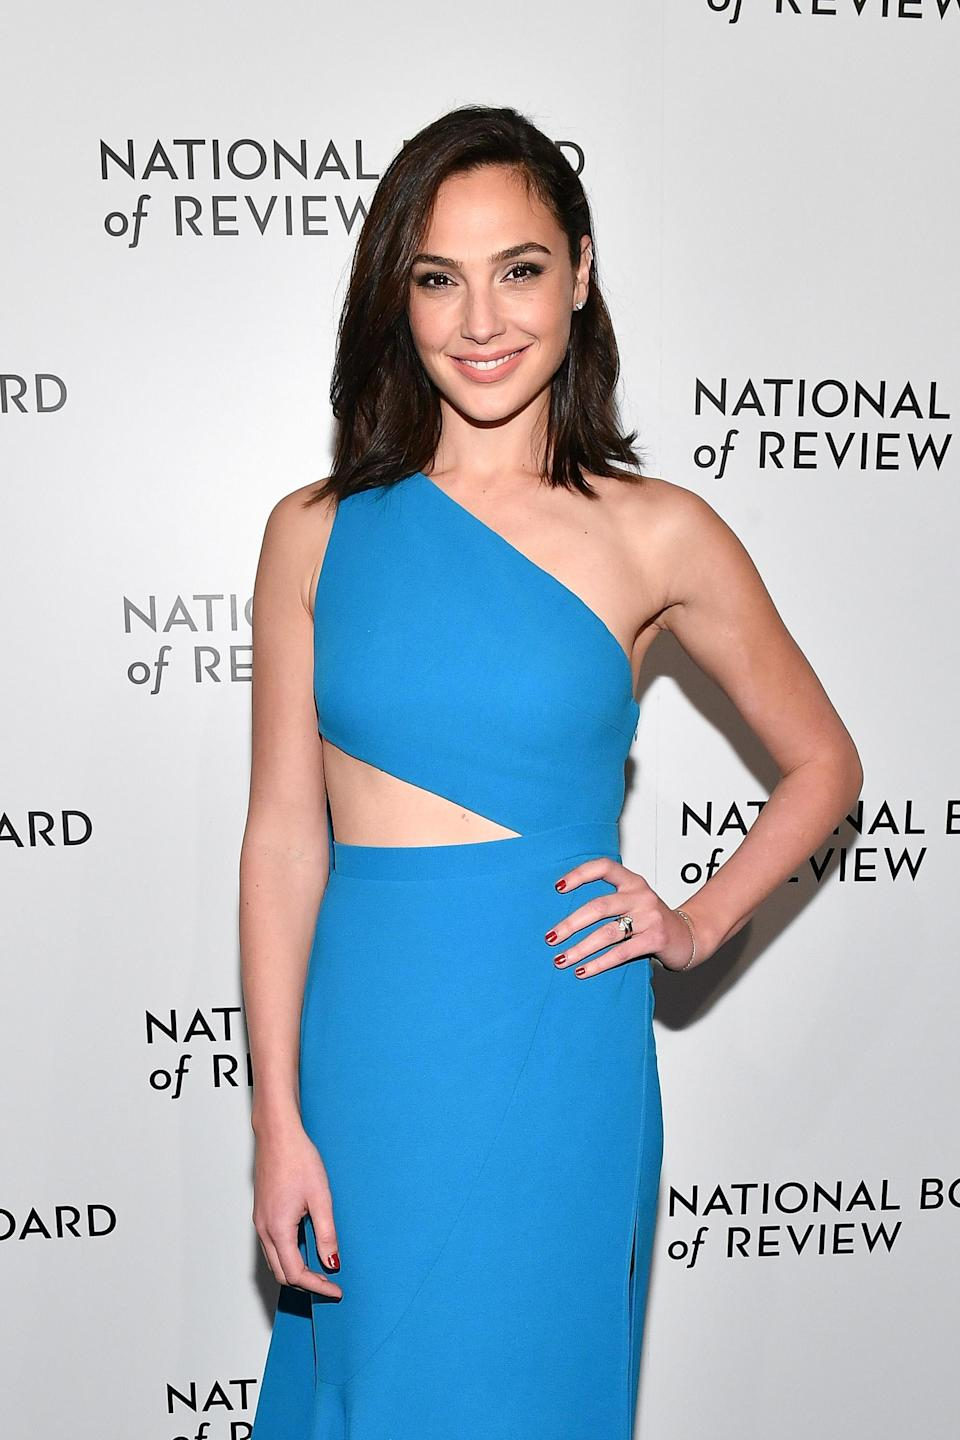 Wonder Woman actress Gal Gadot's choice to wear Lebanese designer Ellie Saab to the National Board of Review gala sparked controversy. (Photo: Getty Images)